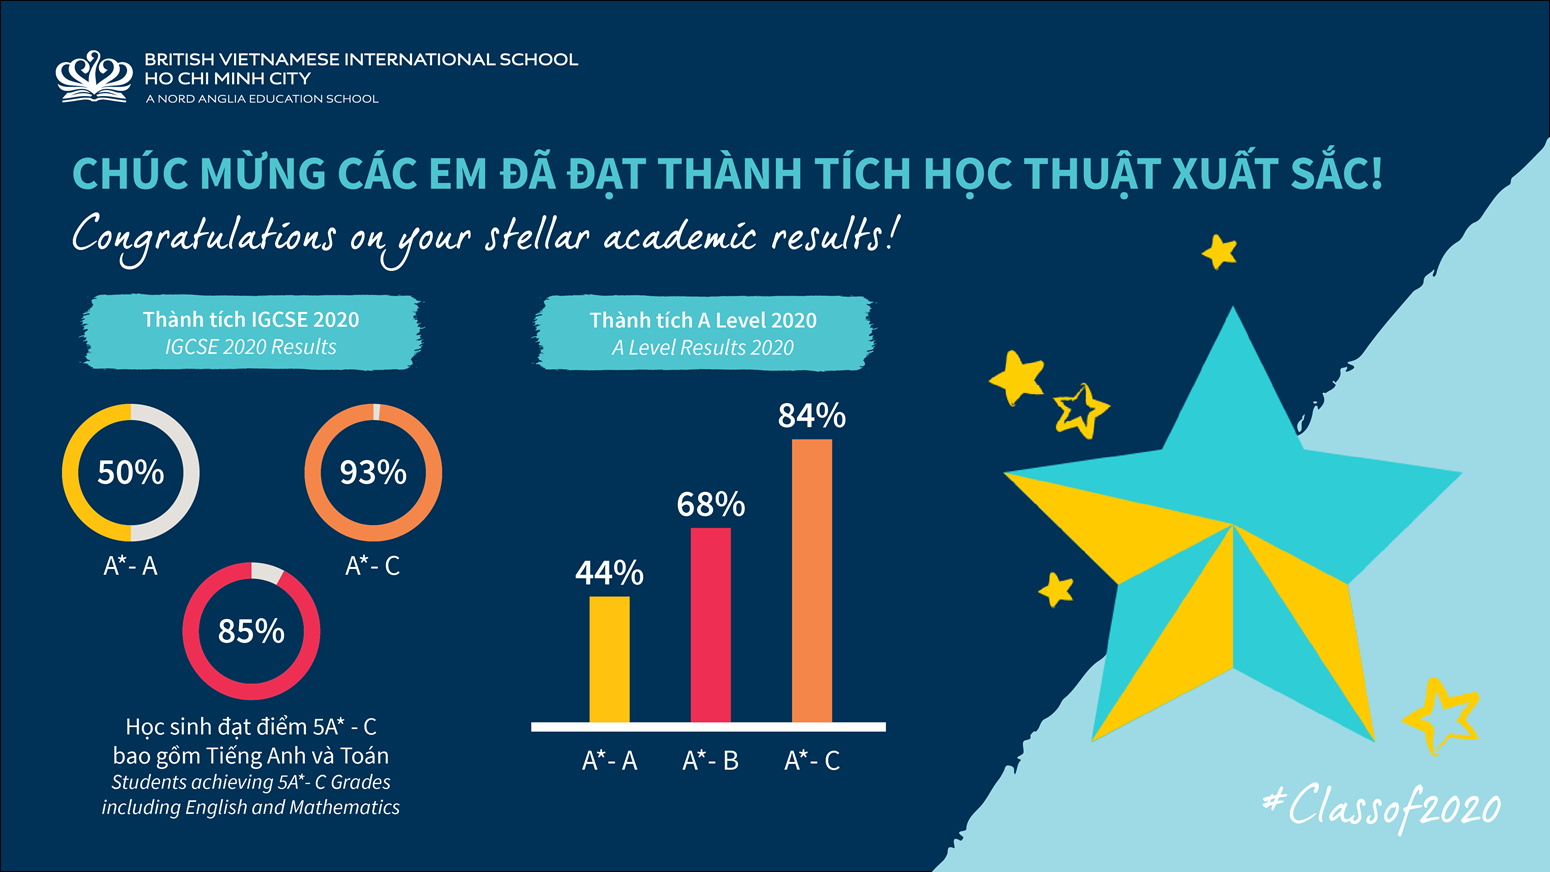 BVIS HCMC IGCSE A Level Results 2019-2020